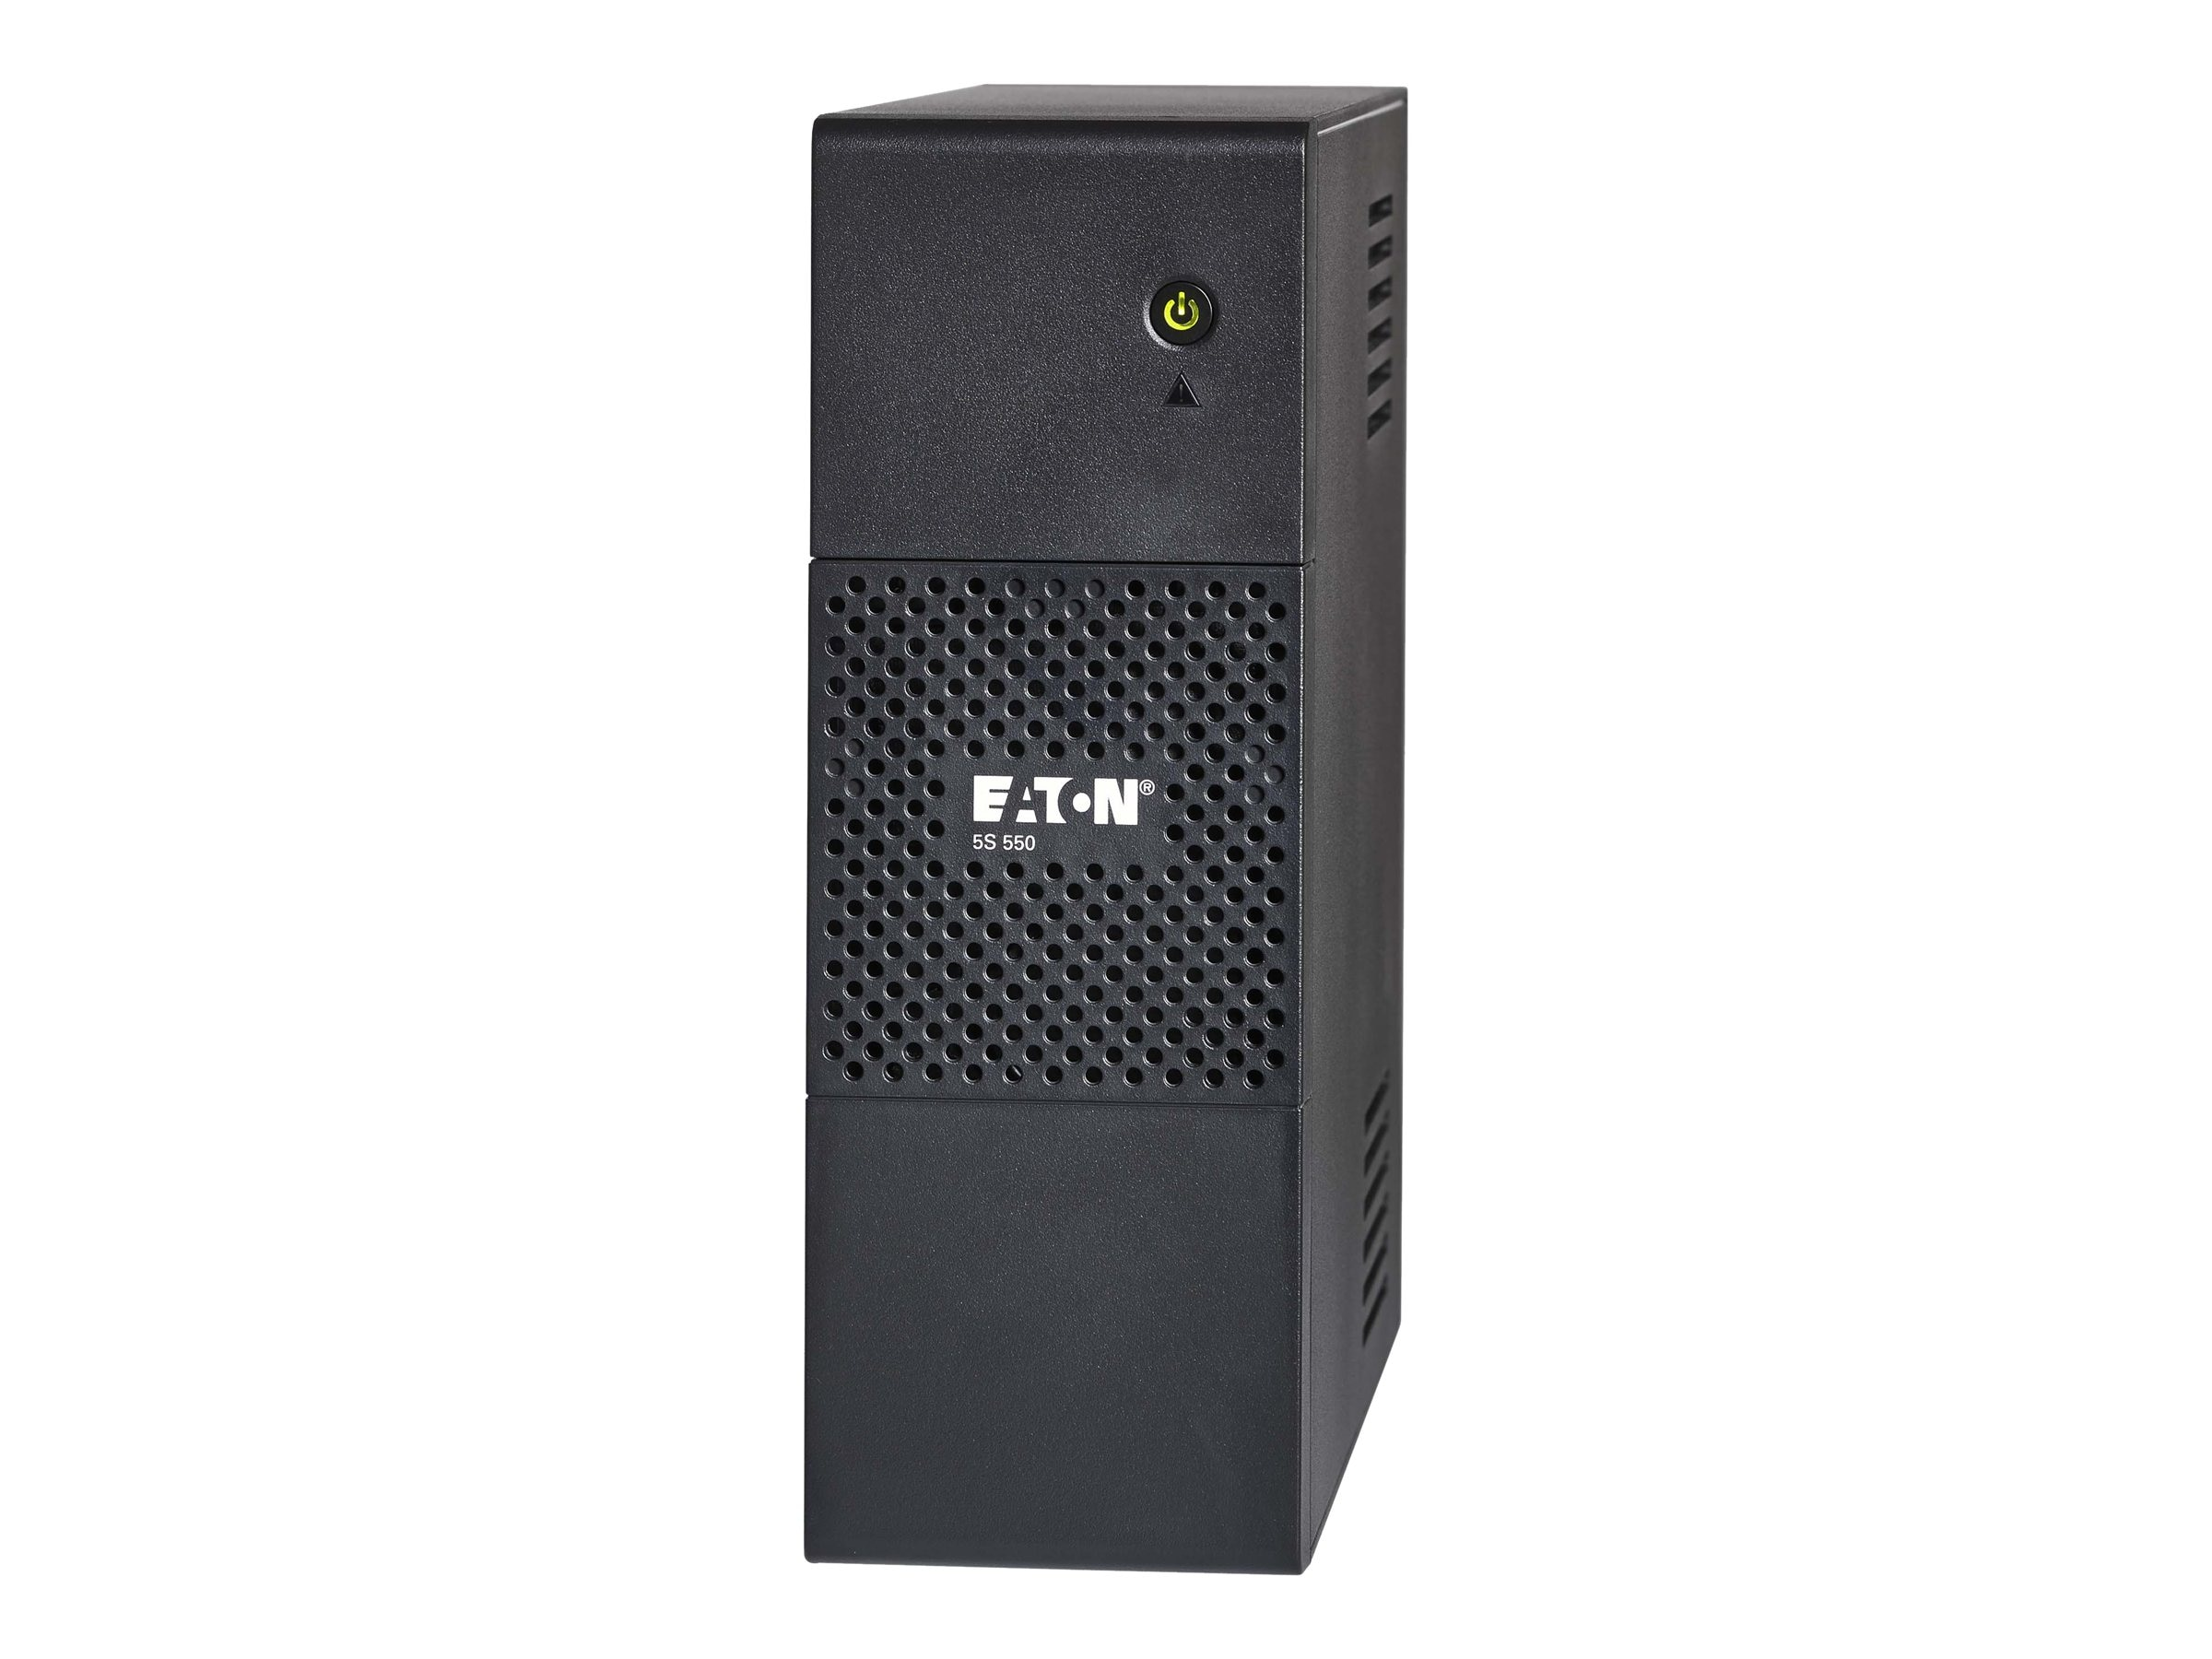 Eaton 5S 550VA 330W 120V Line-interactive Tower UPS 5-15P Input 6ft Cord (8) 5-15R Outlets USB, 5S550, 15792451, Battery Backup/UPS